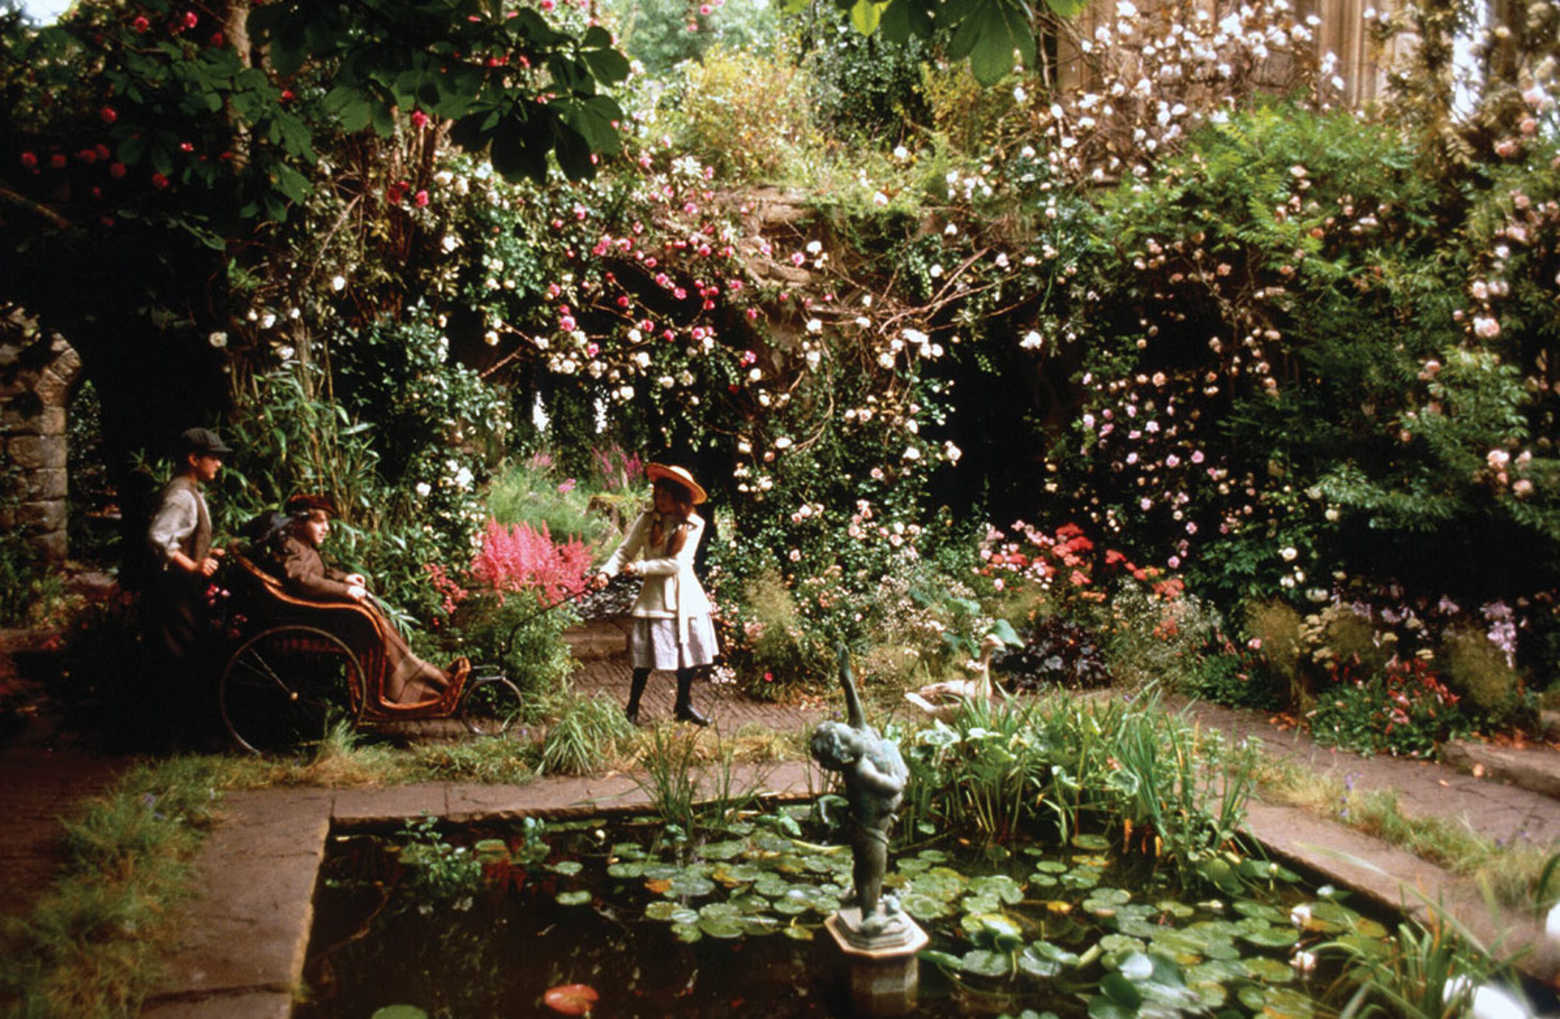 Secret Garden: Over A Century Of The Secret Garden